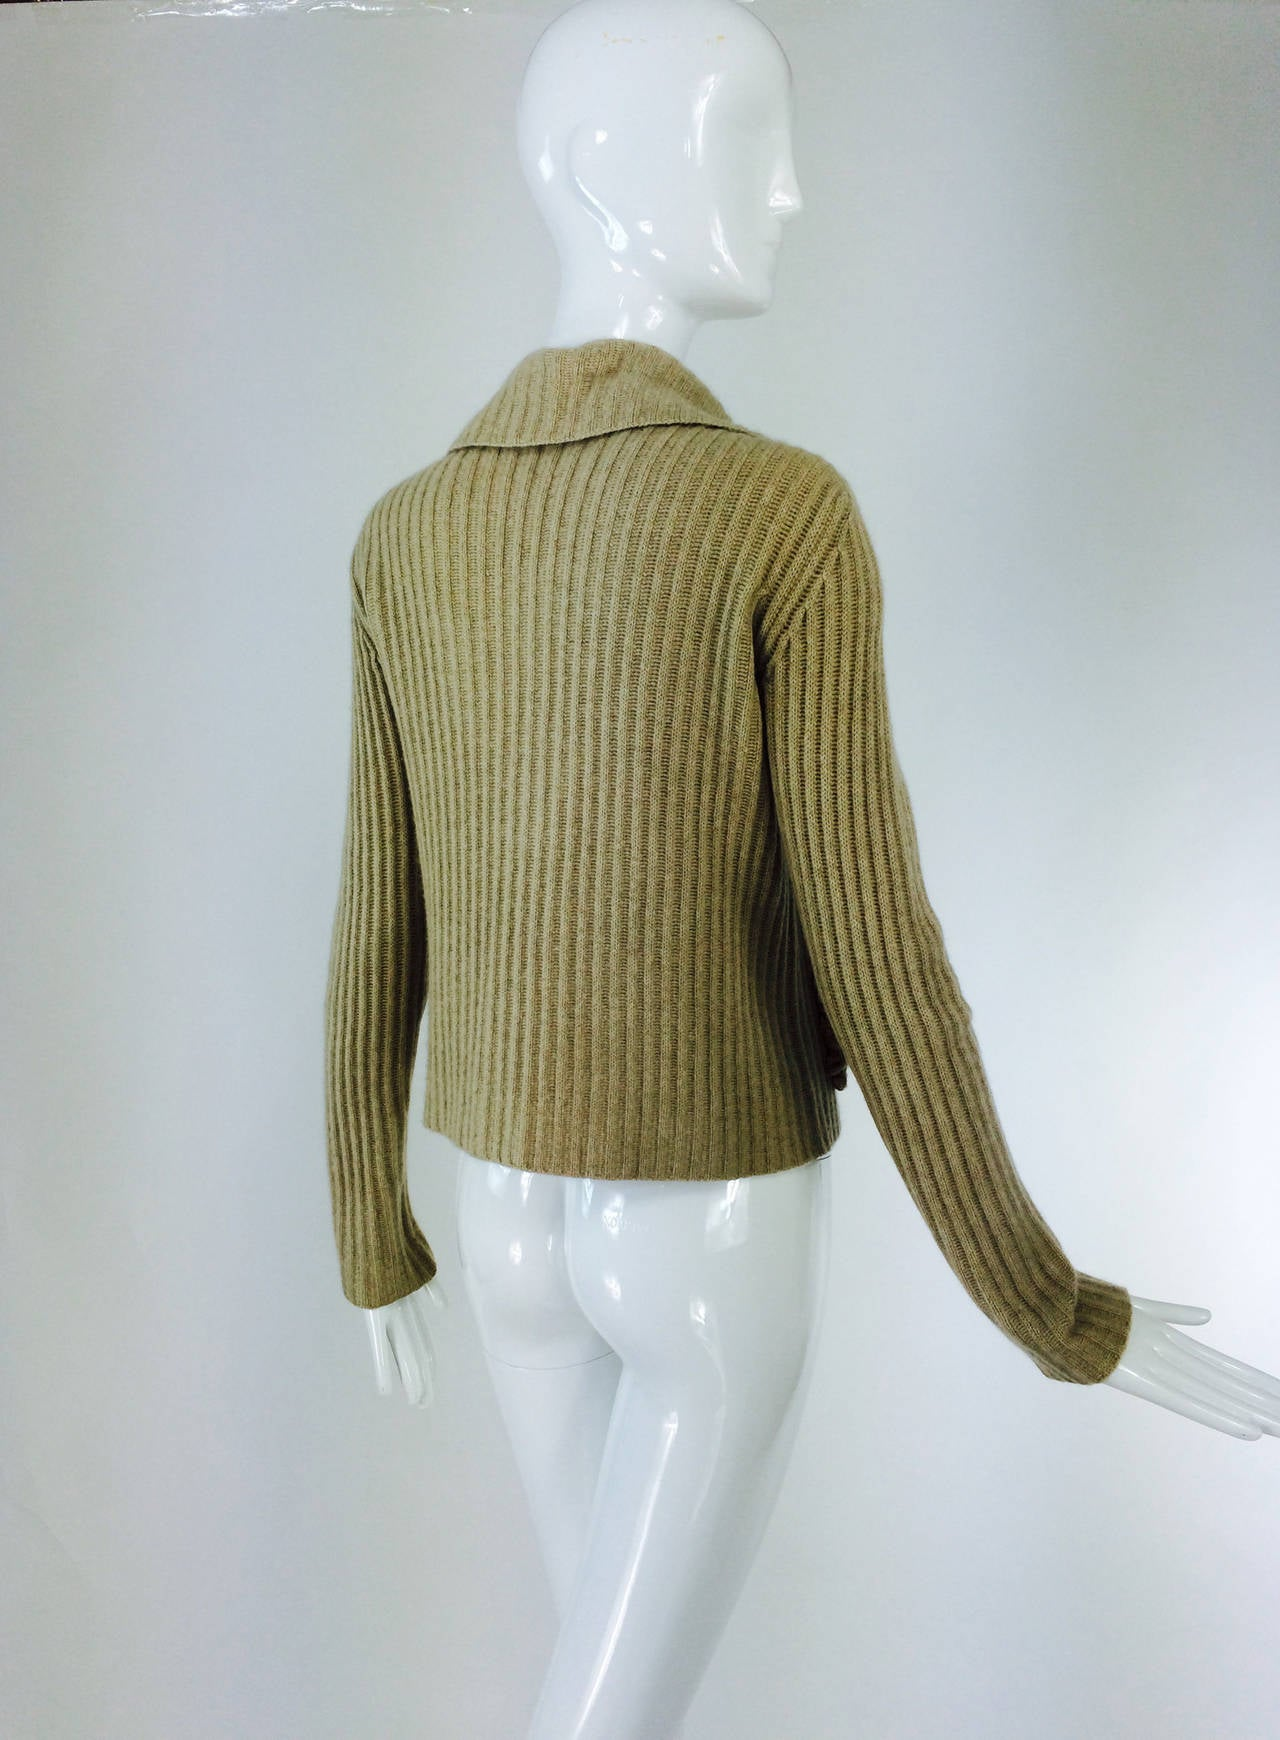 TSE beige cashmere & karakul zip front sweater jacket In Good Condition For Sale In West Palm Beach, FL